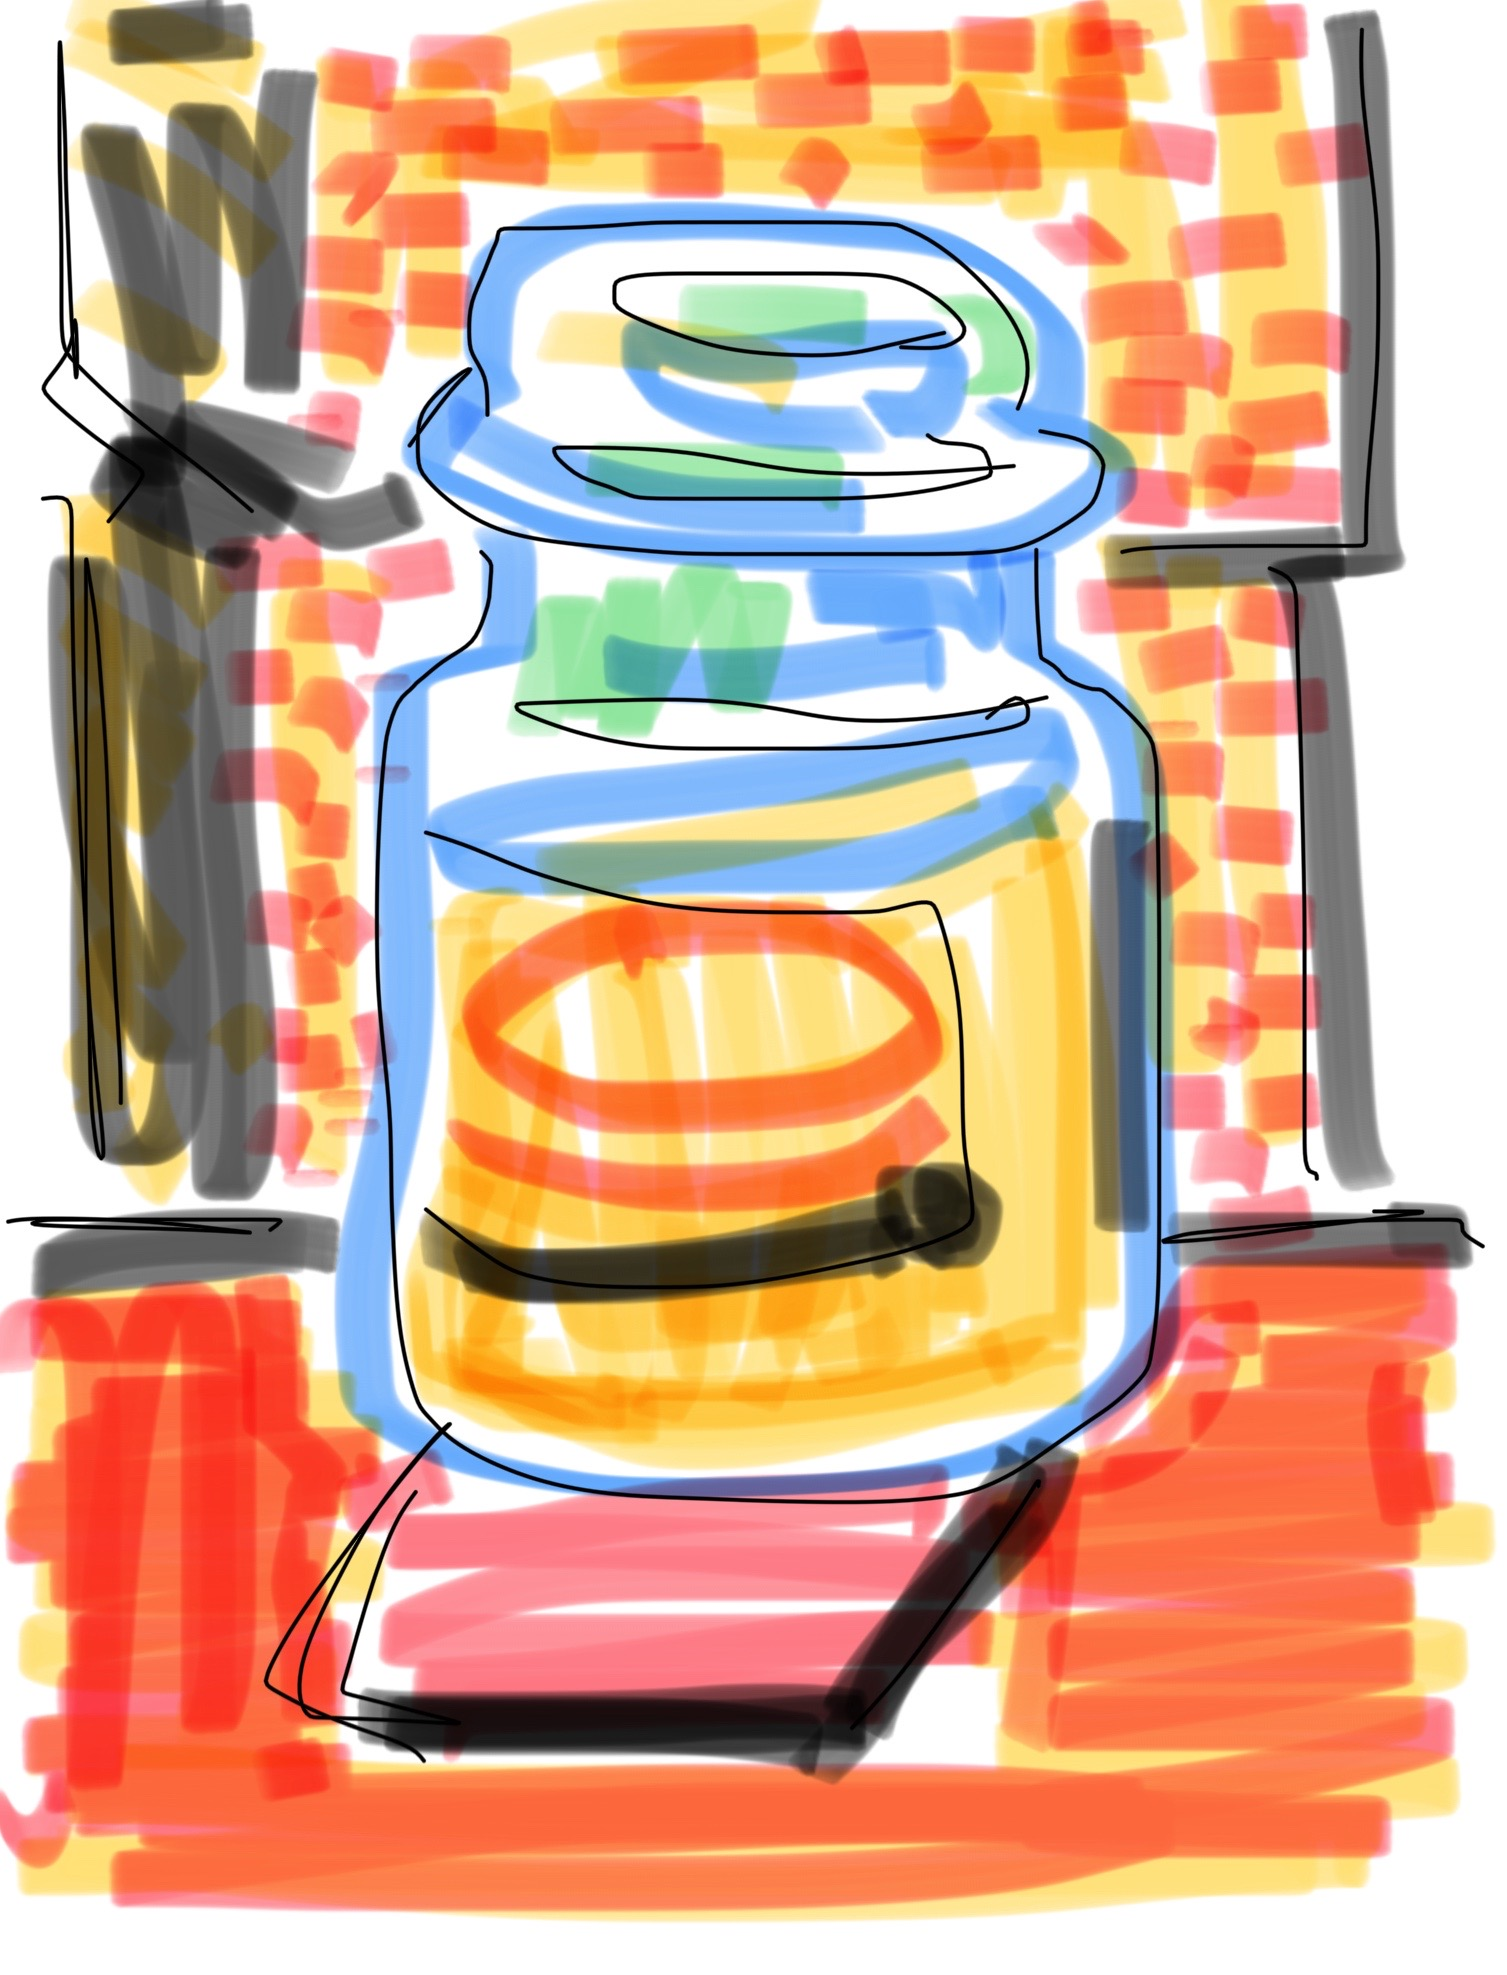 fig 3:    Candle Jar still life